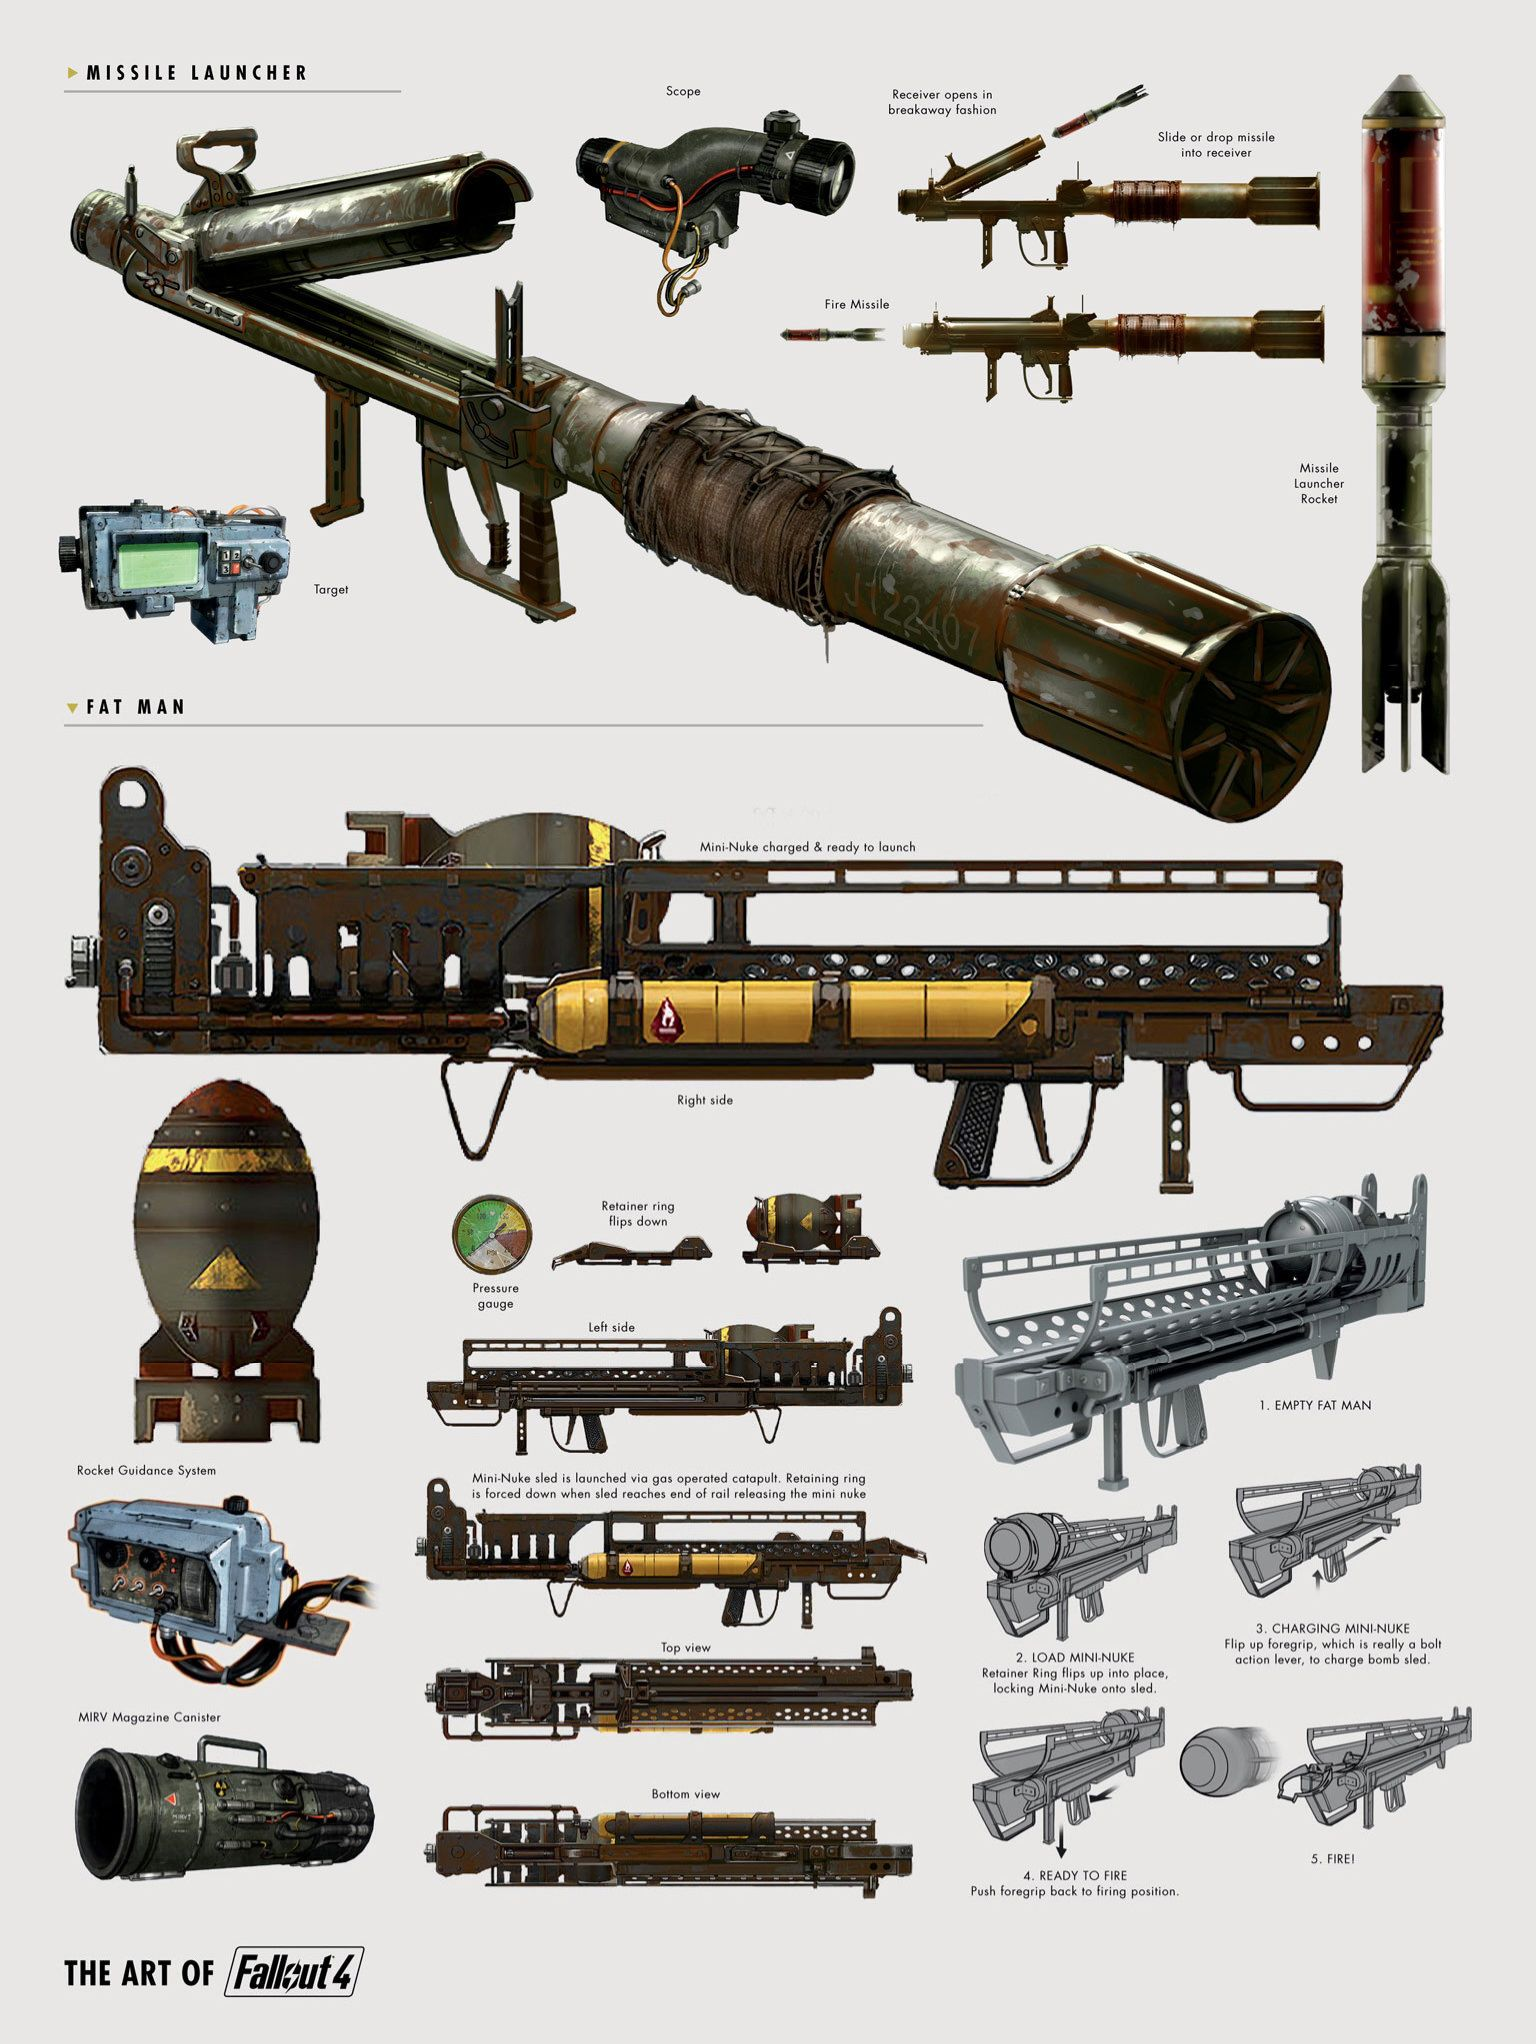 The Art of Fallout 4 - Missel Launcher and Fat Man | game room ideas